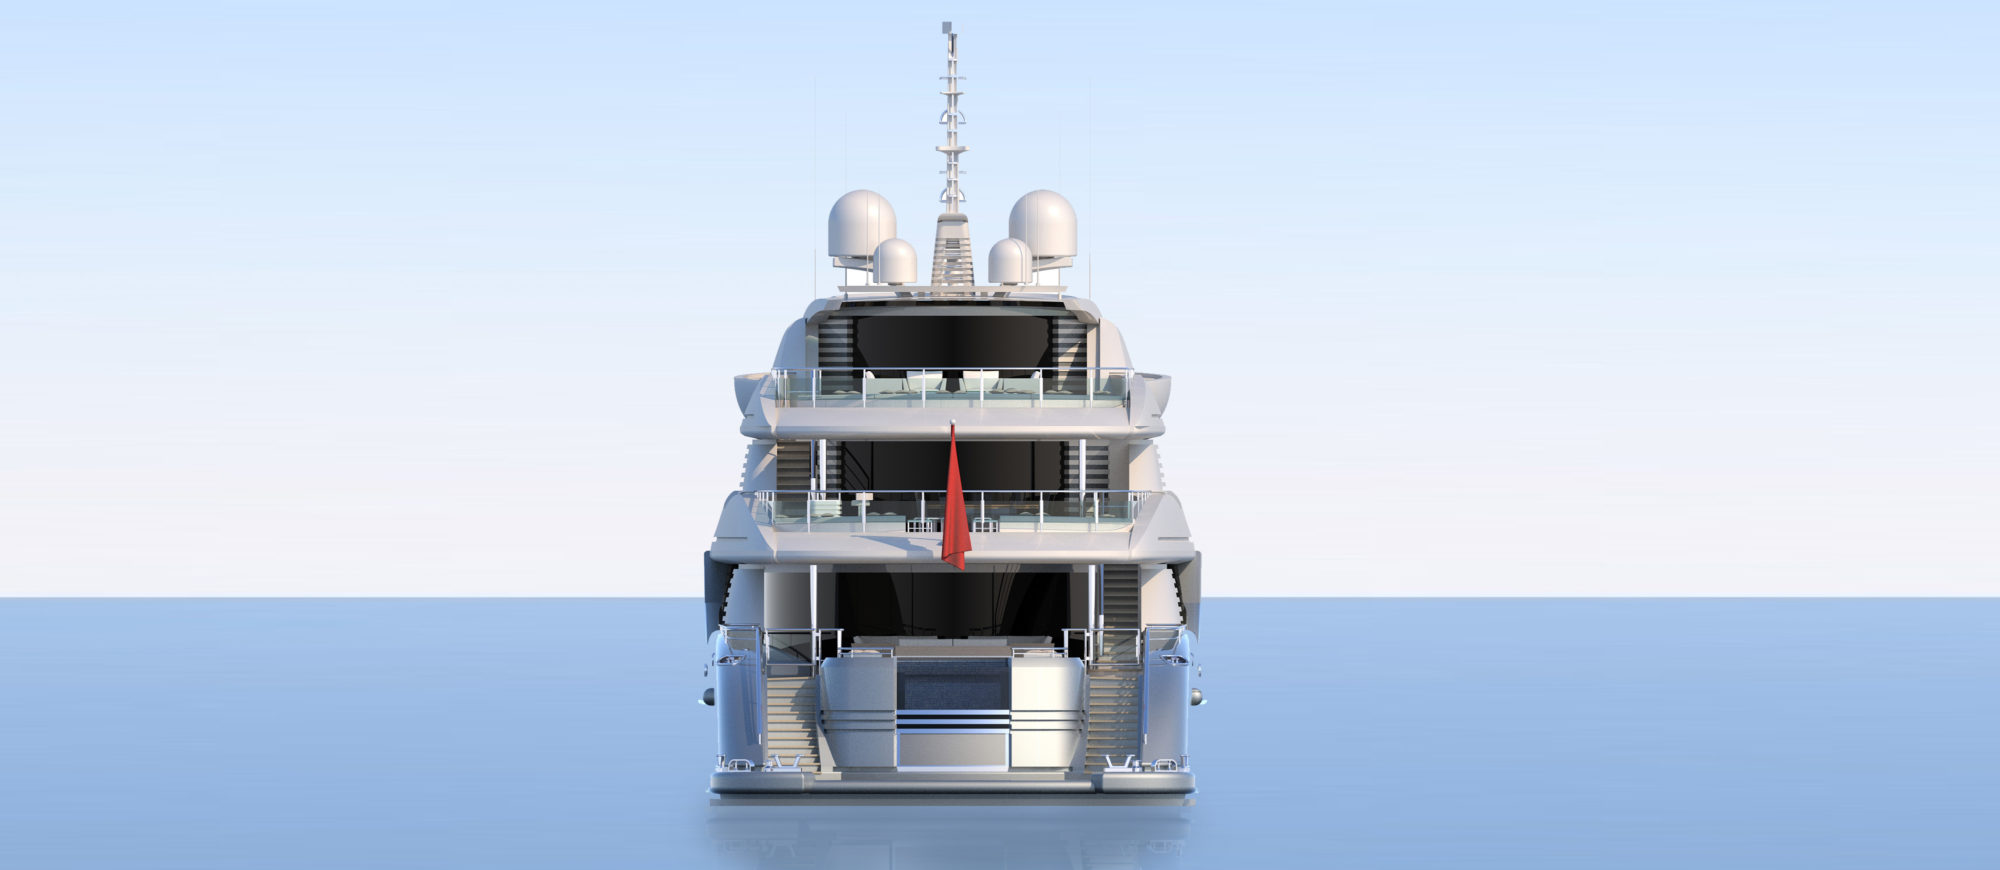 Conrad C233 Superyacht Concept Vallicelli Visualisation Rear Profile